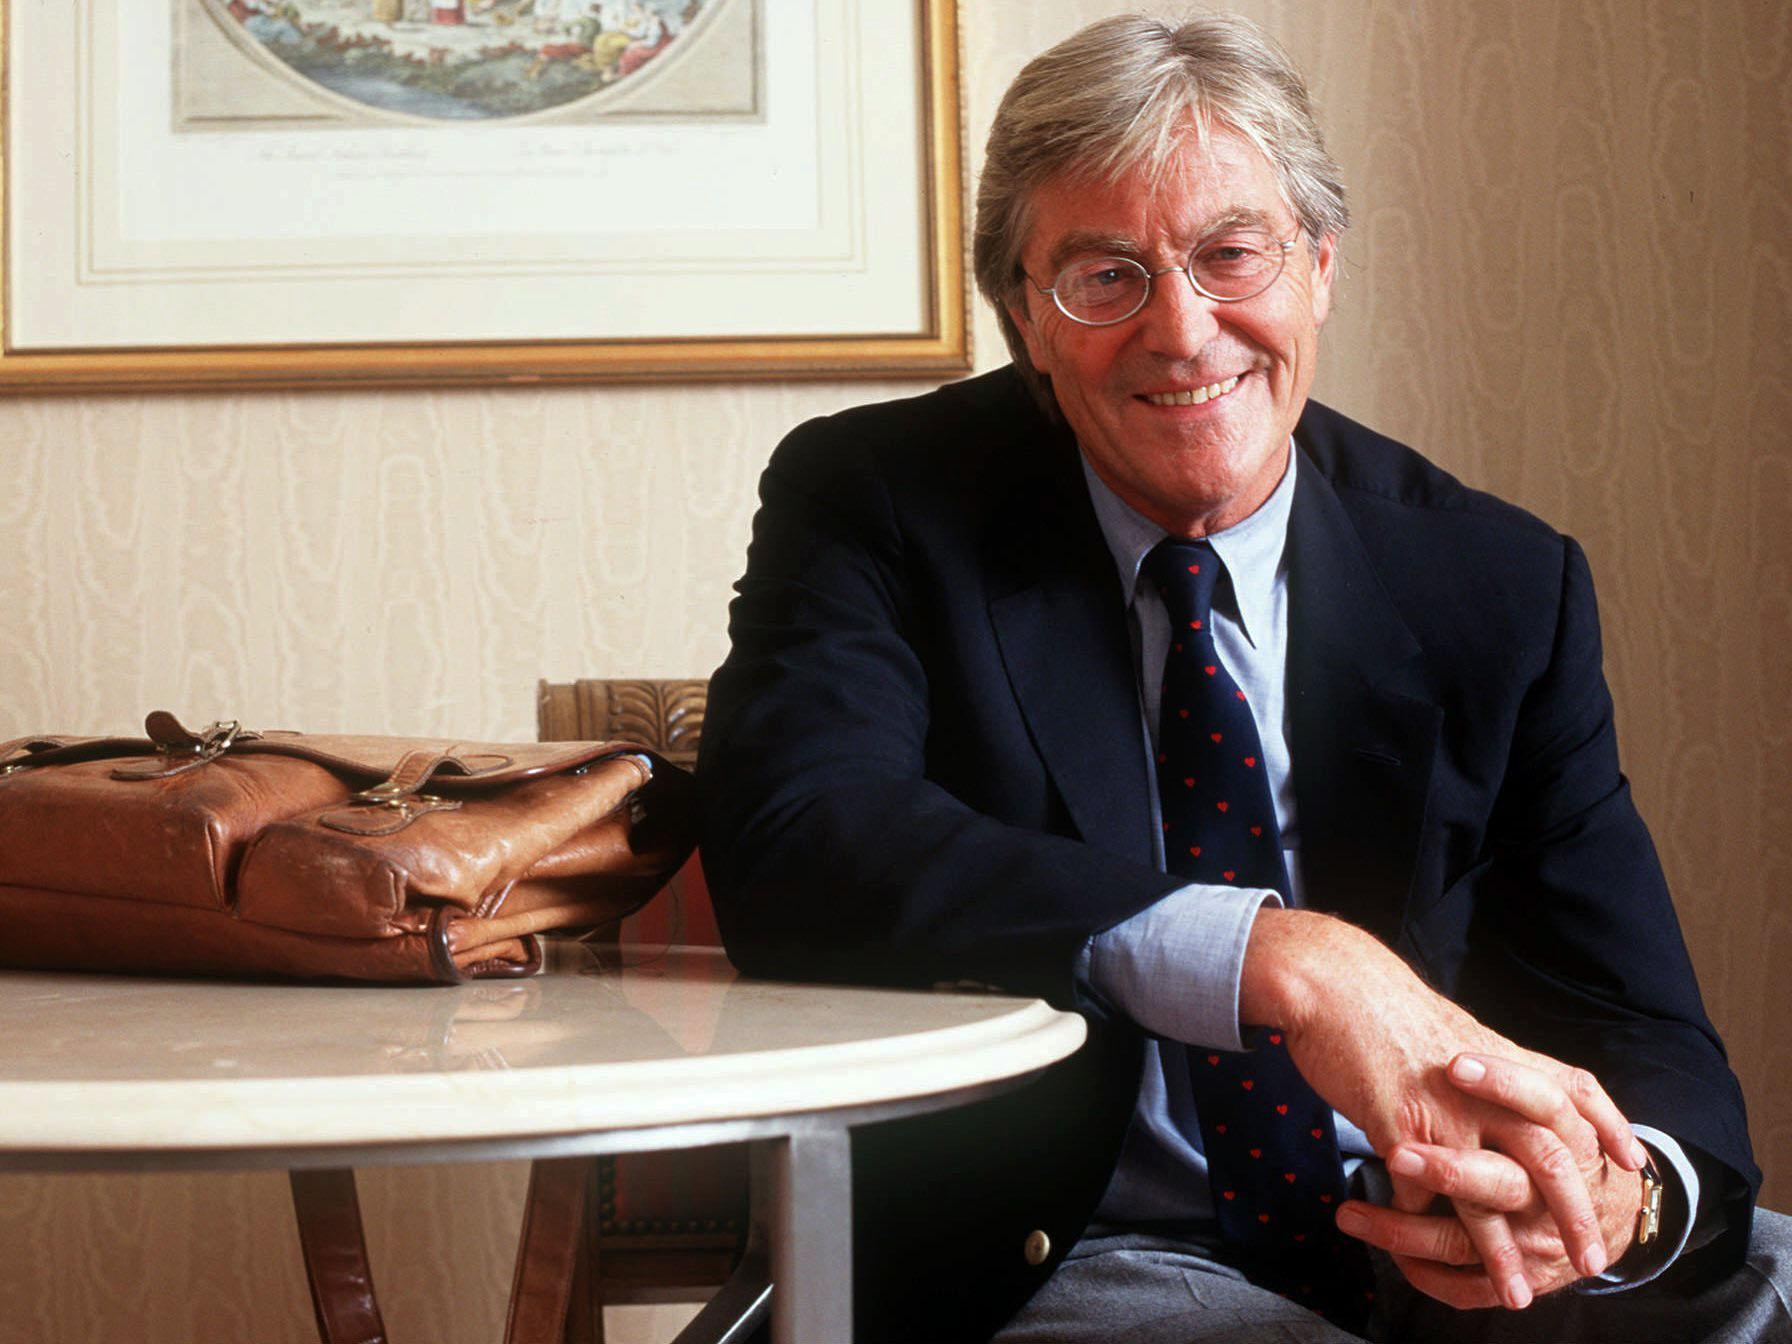 Peter Mayle dead: Author of 'A Year in Provence', filmed by Sir Ridley Scott, dies aged 78